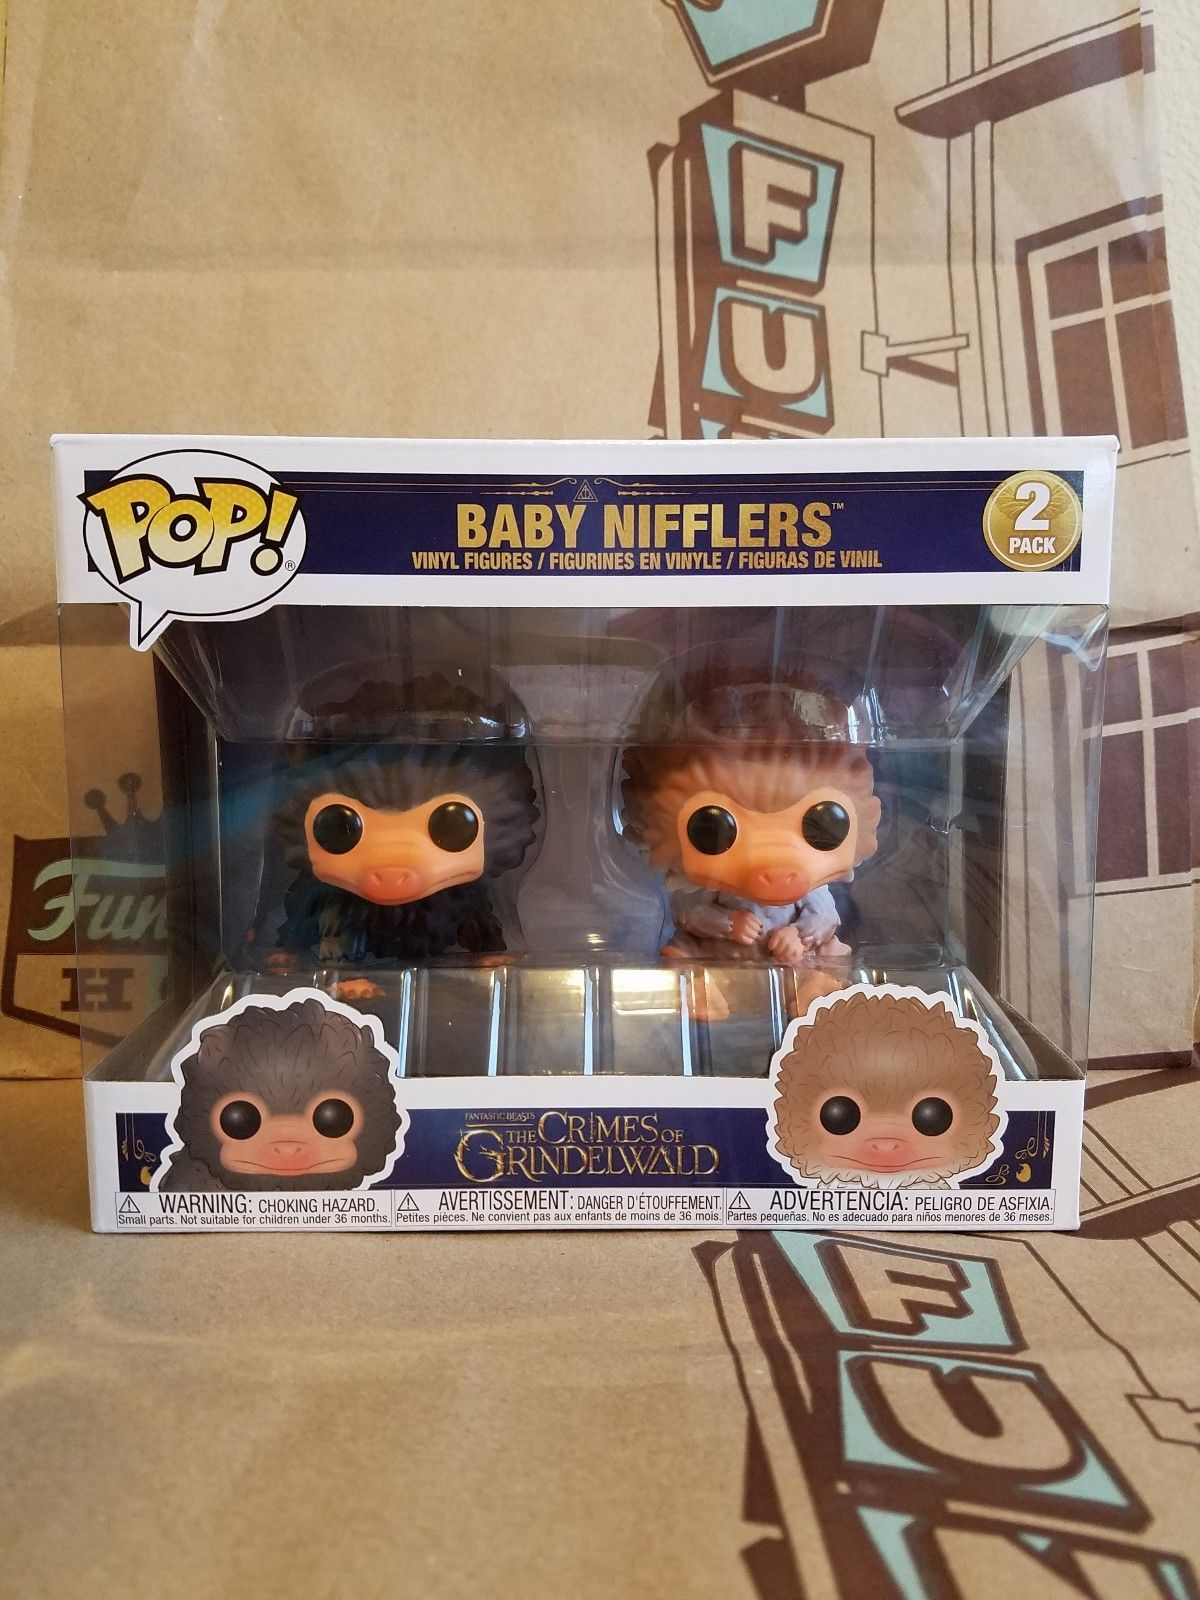 In Stock Exclusive Funko pop Fantastic Beasts 2 Harry Potter - Baby Nifflers 2 pack Vinyl Action Figures Collectible Model Toy 2017 sdcc exclusive funko pop official harry potter luna lovegood vinyl action figure collectible model toy with original box